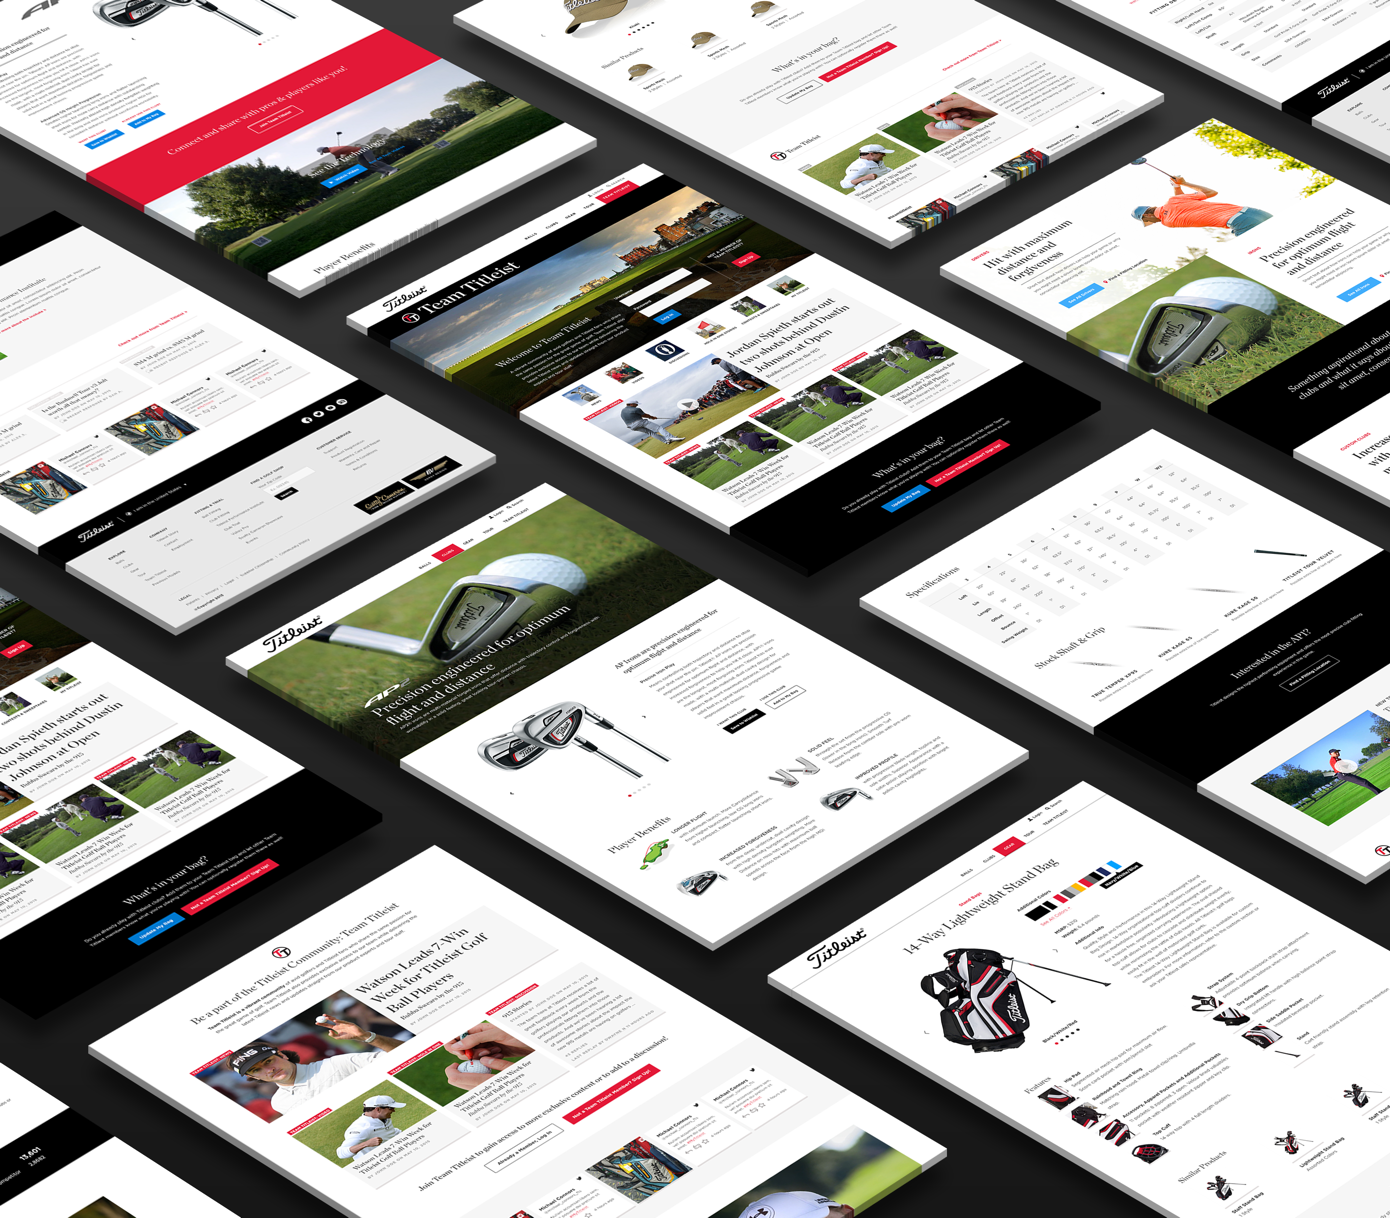 a grid of images of different screens in the titleist page